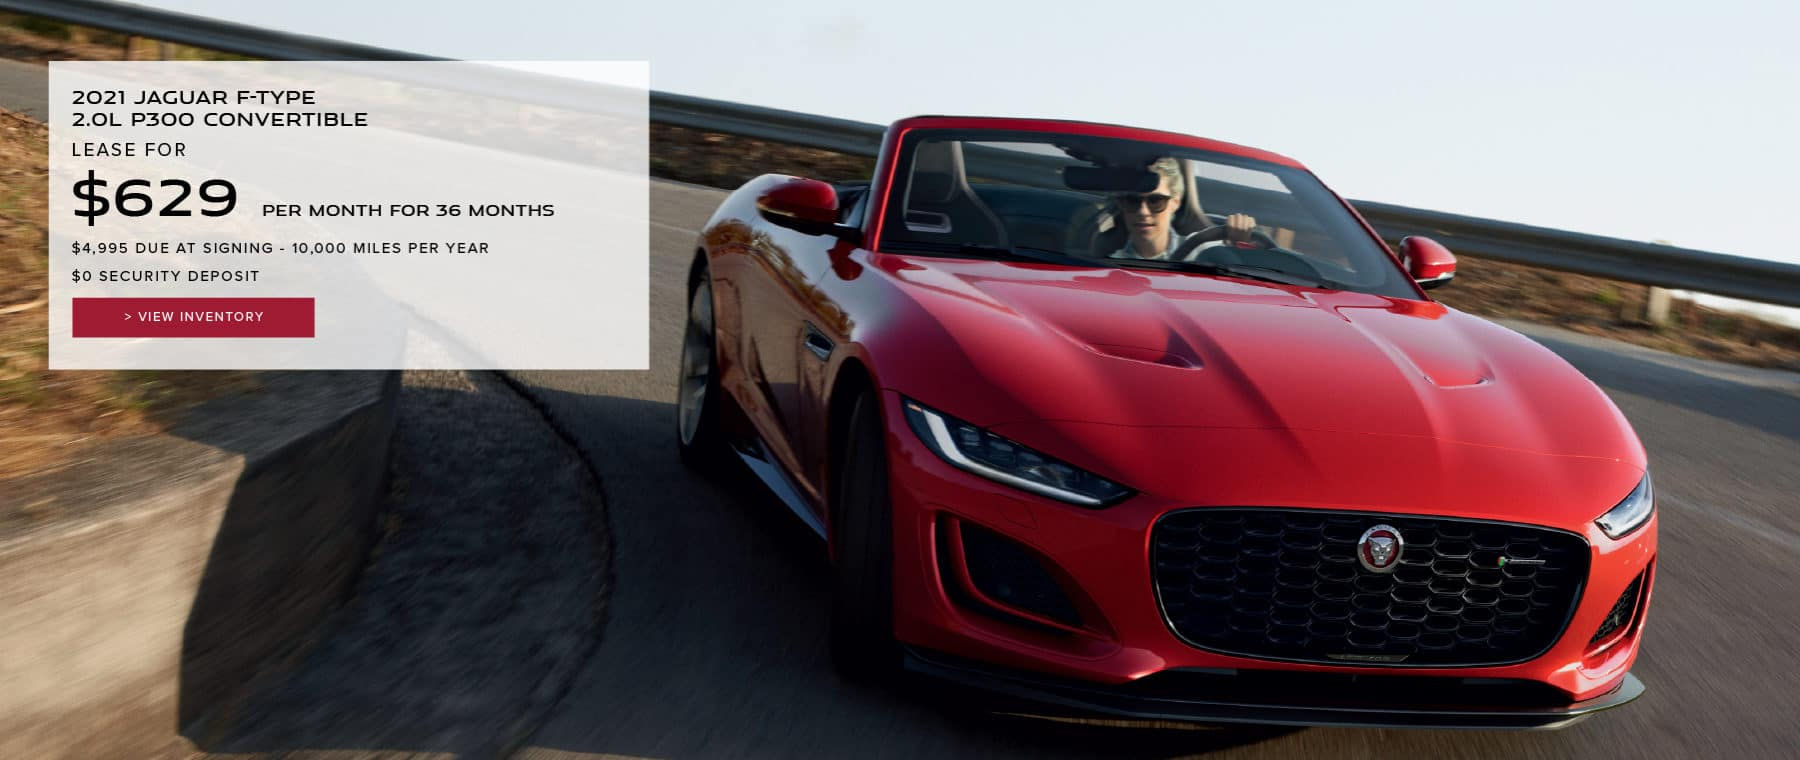 2021 JAGUAR F-TYPE 2.0L P300 CONVERTIBLE. $629 PER MONTH. 36 MONTH LEASE TERM. $4,995 CASH DUE AT SIGNING. $0 SECURITY DEPOSIT. 7,500 MILES PER YEAR. EXCLUDES RETAILER FEES, TAXES, TITLE AND REGISTRATION FEES, PROCESSING FEE AND ANY EMISSION TESTING CHARGE. OFFER ENDS 6/1/2021. VIEW INVENTORY. RED JAGUAR F-TYPE DRIVING DOWN ROAD,